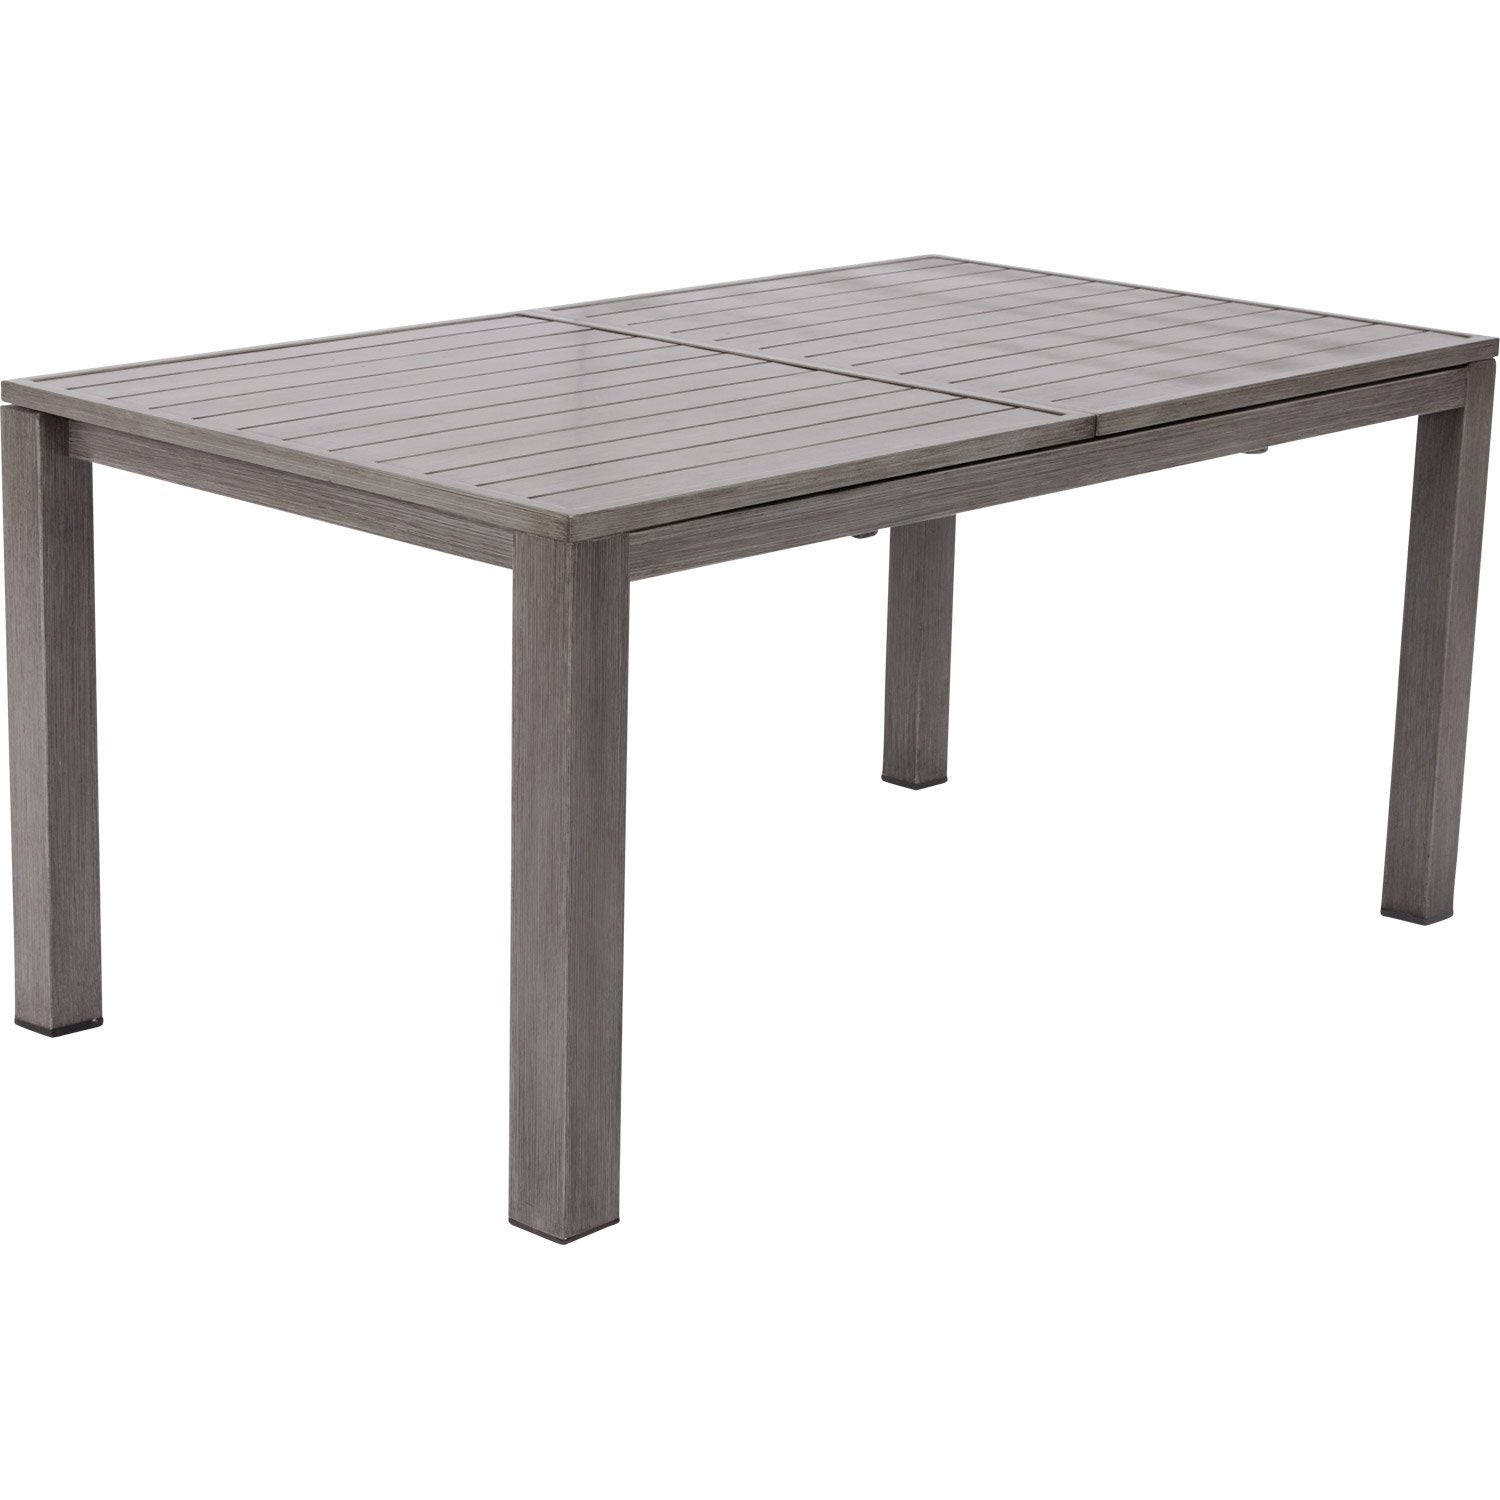 Table de jardin NATERIAL Antibes rectangulaire gris look bois 10 ...